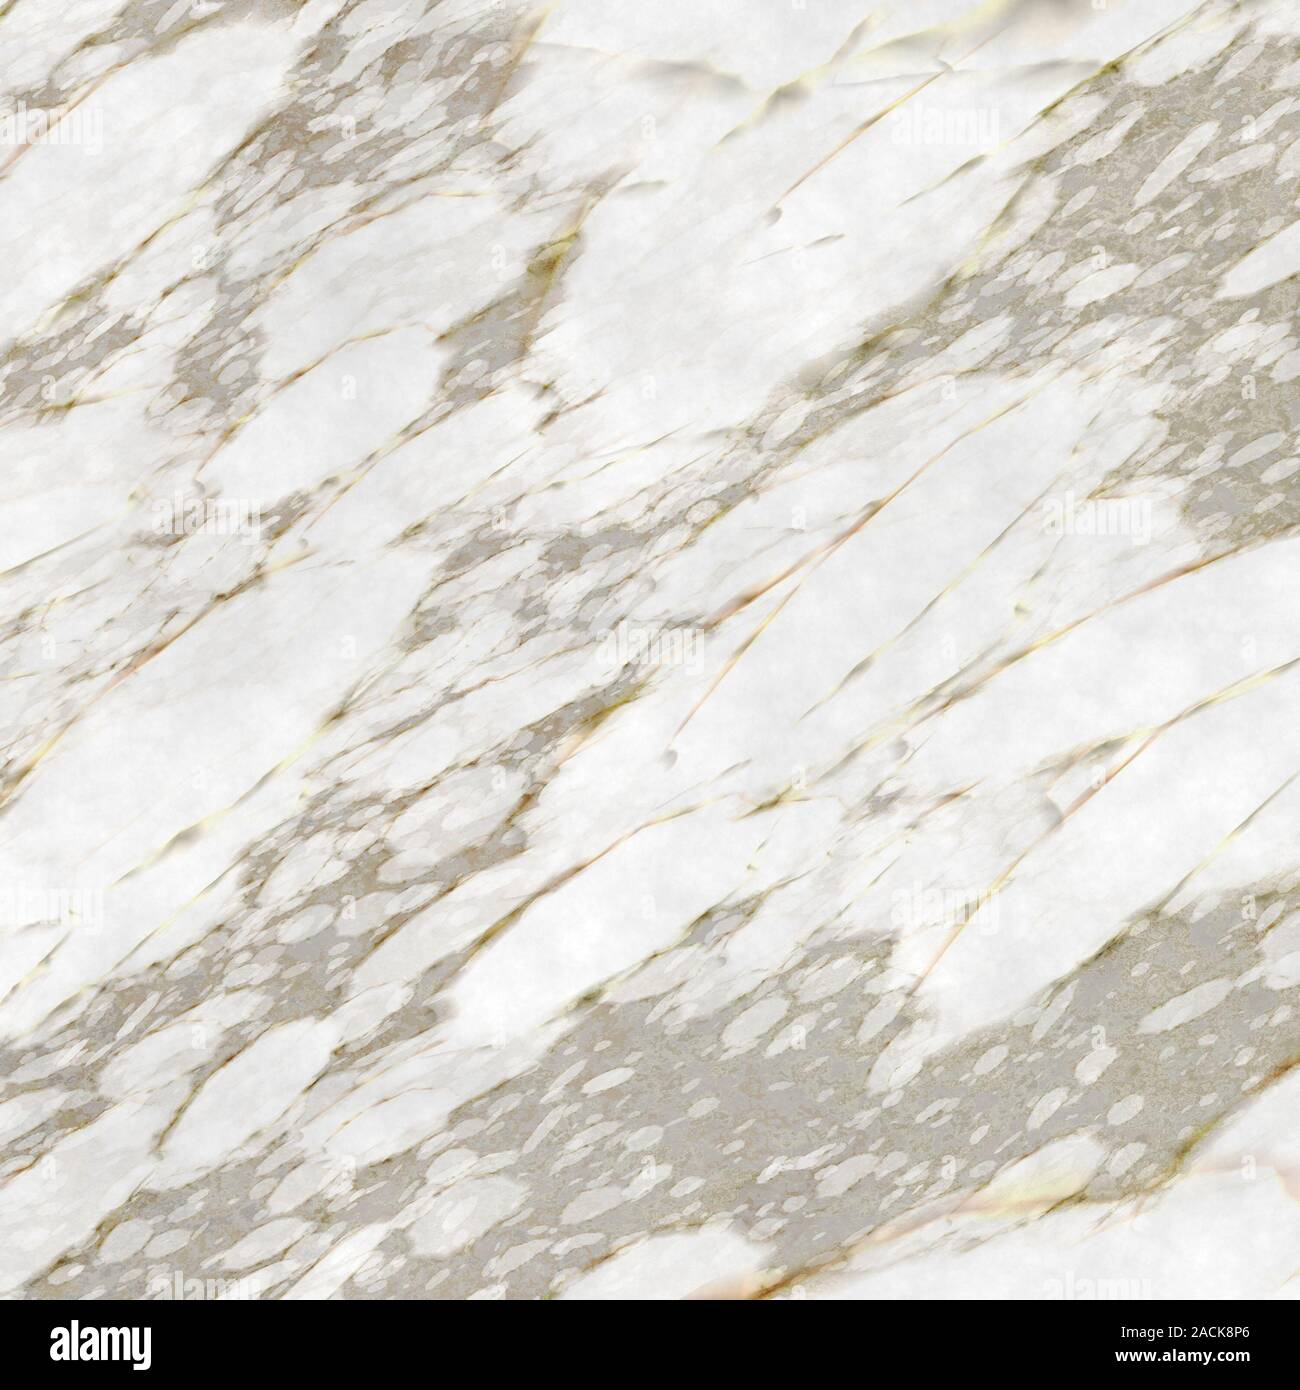 Natural White Marble Texture For Skin Tile Wallpaper Luxurious Background Creative Stone Ceramic Art Wall Interiors Backdrop Design Picture High Res Stock Photo Alamy